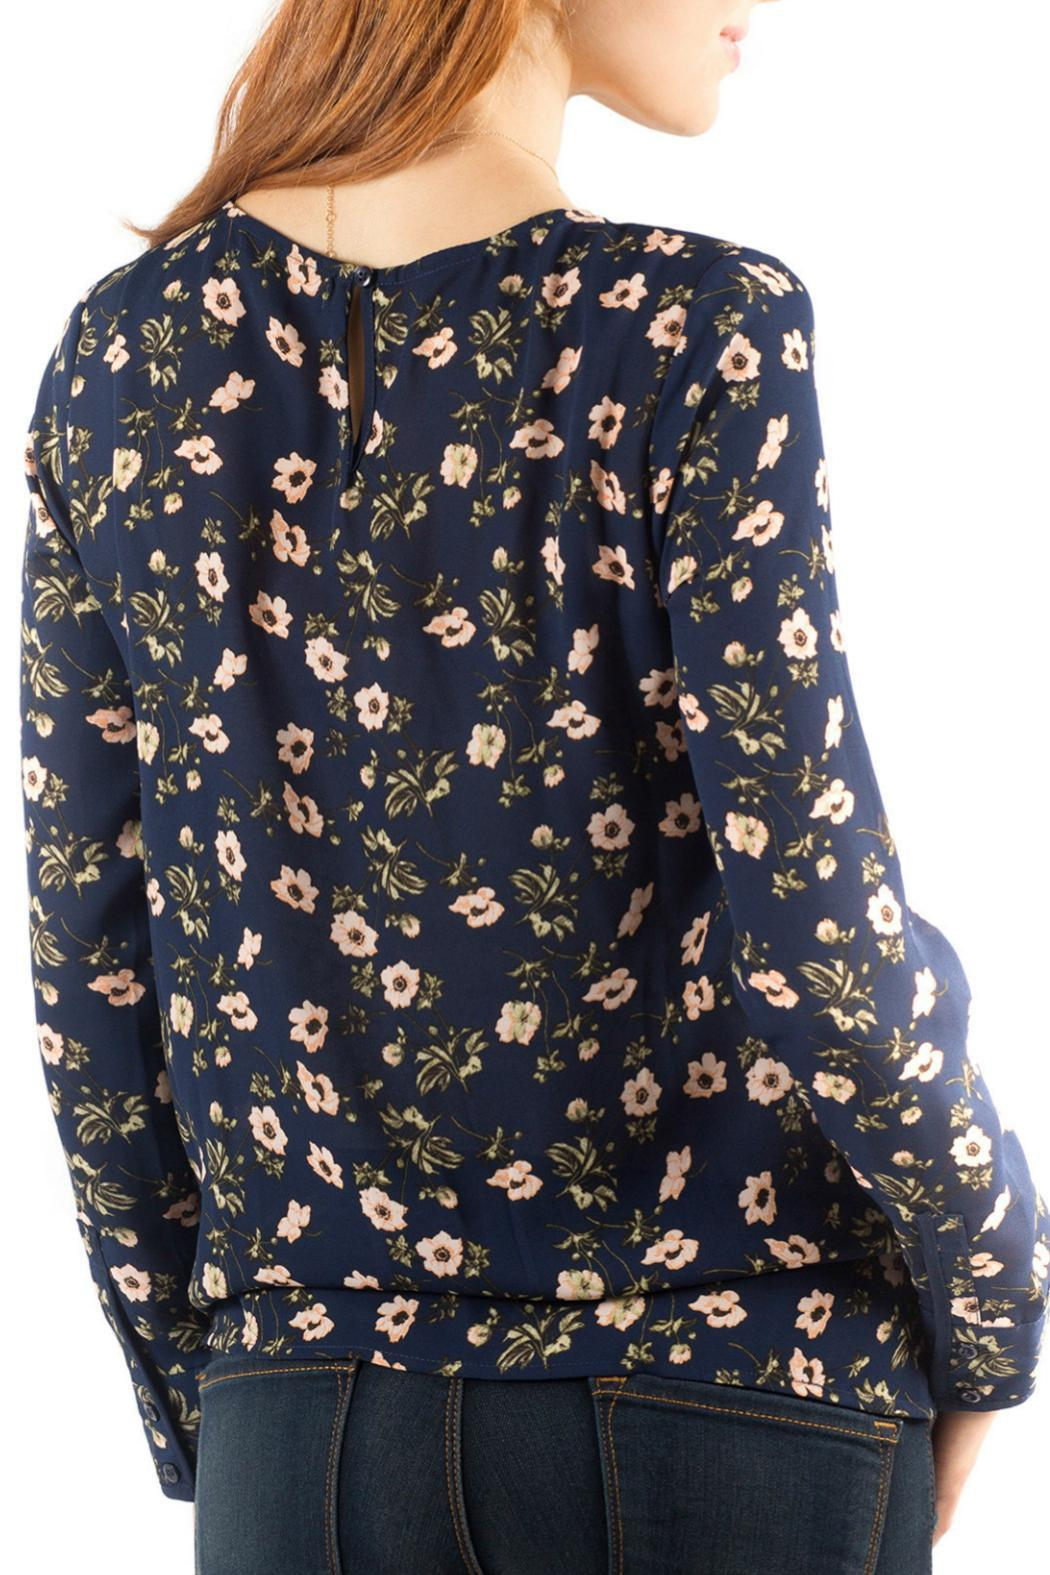 Downeast Basics Zurich Floral Top - Front Full Image